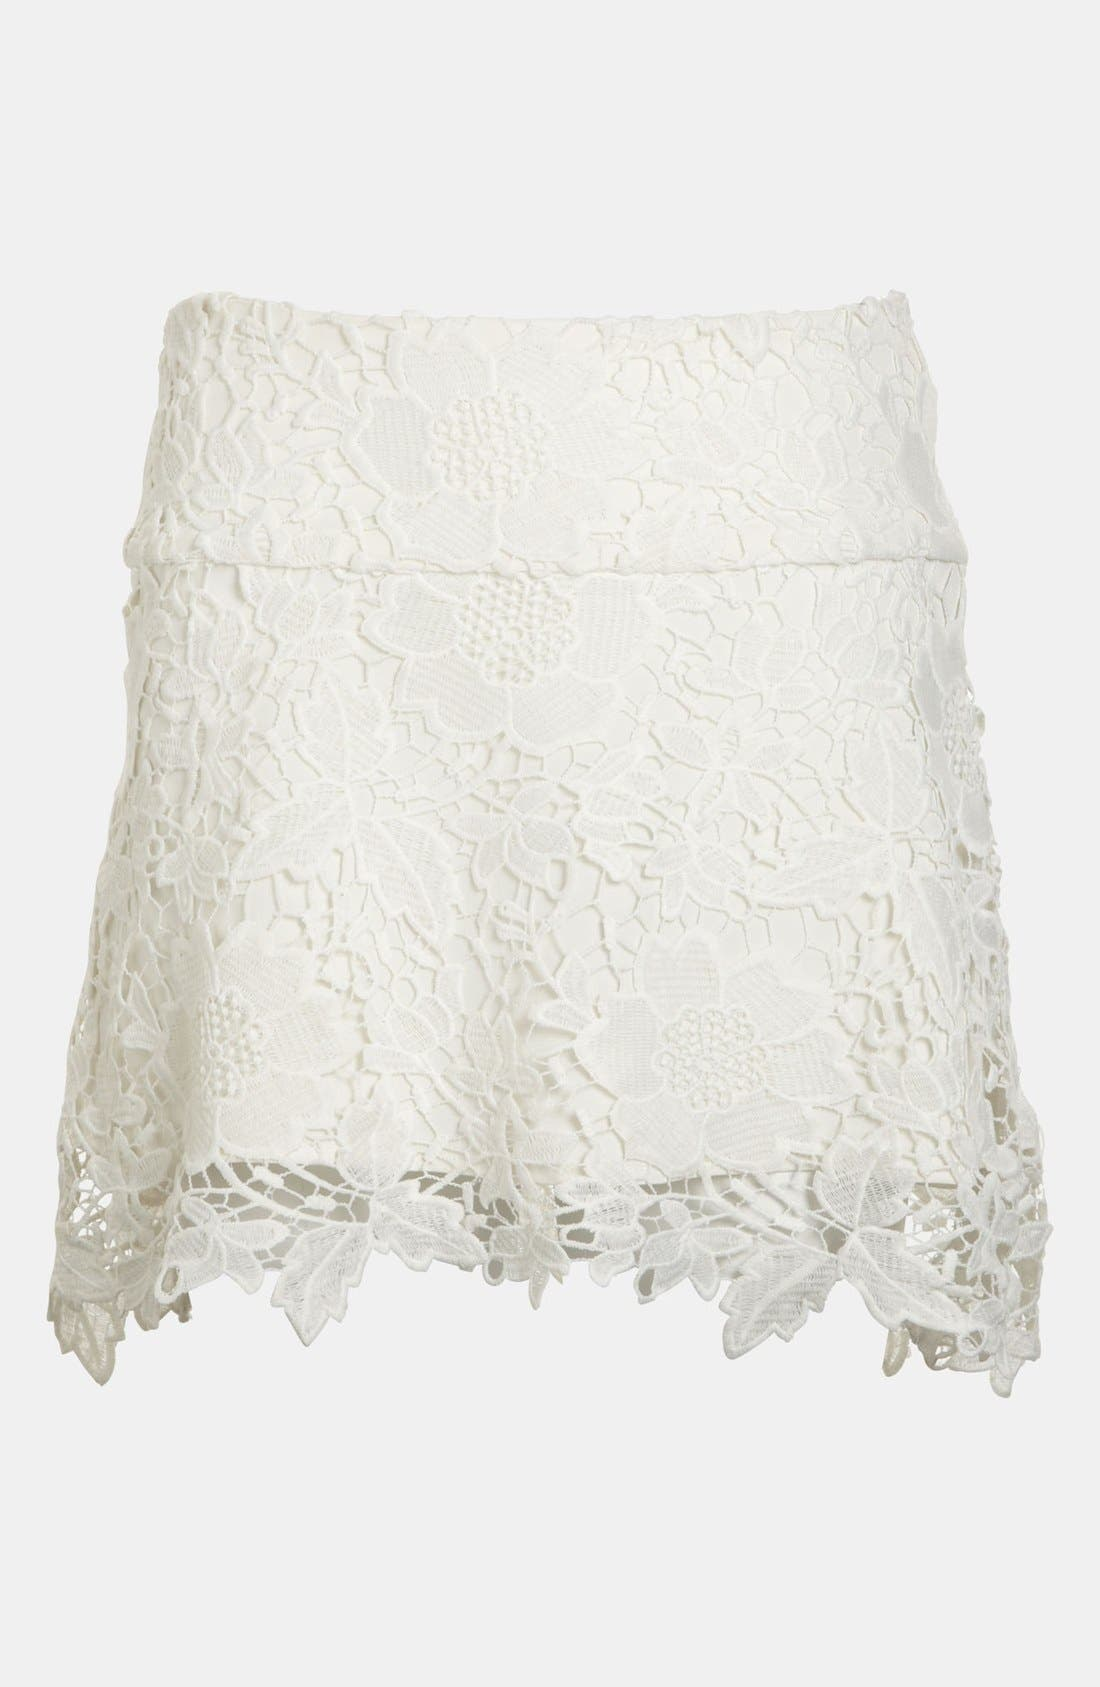 Embroidered Lace Skirt,                             Alternate thumbnail 4, color,                             100